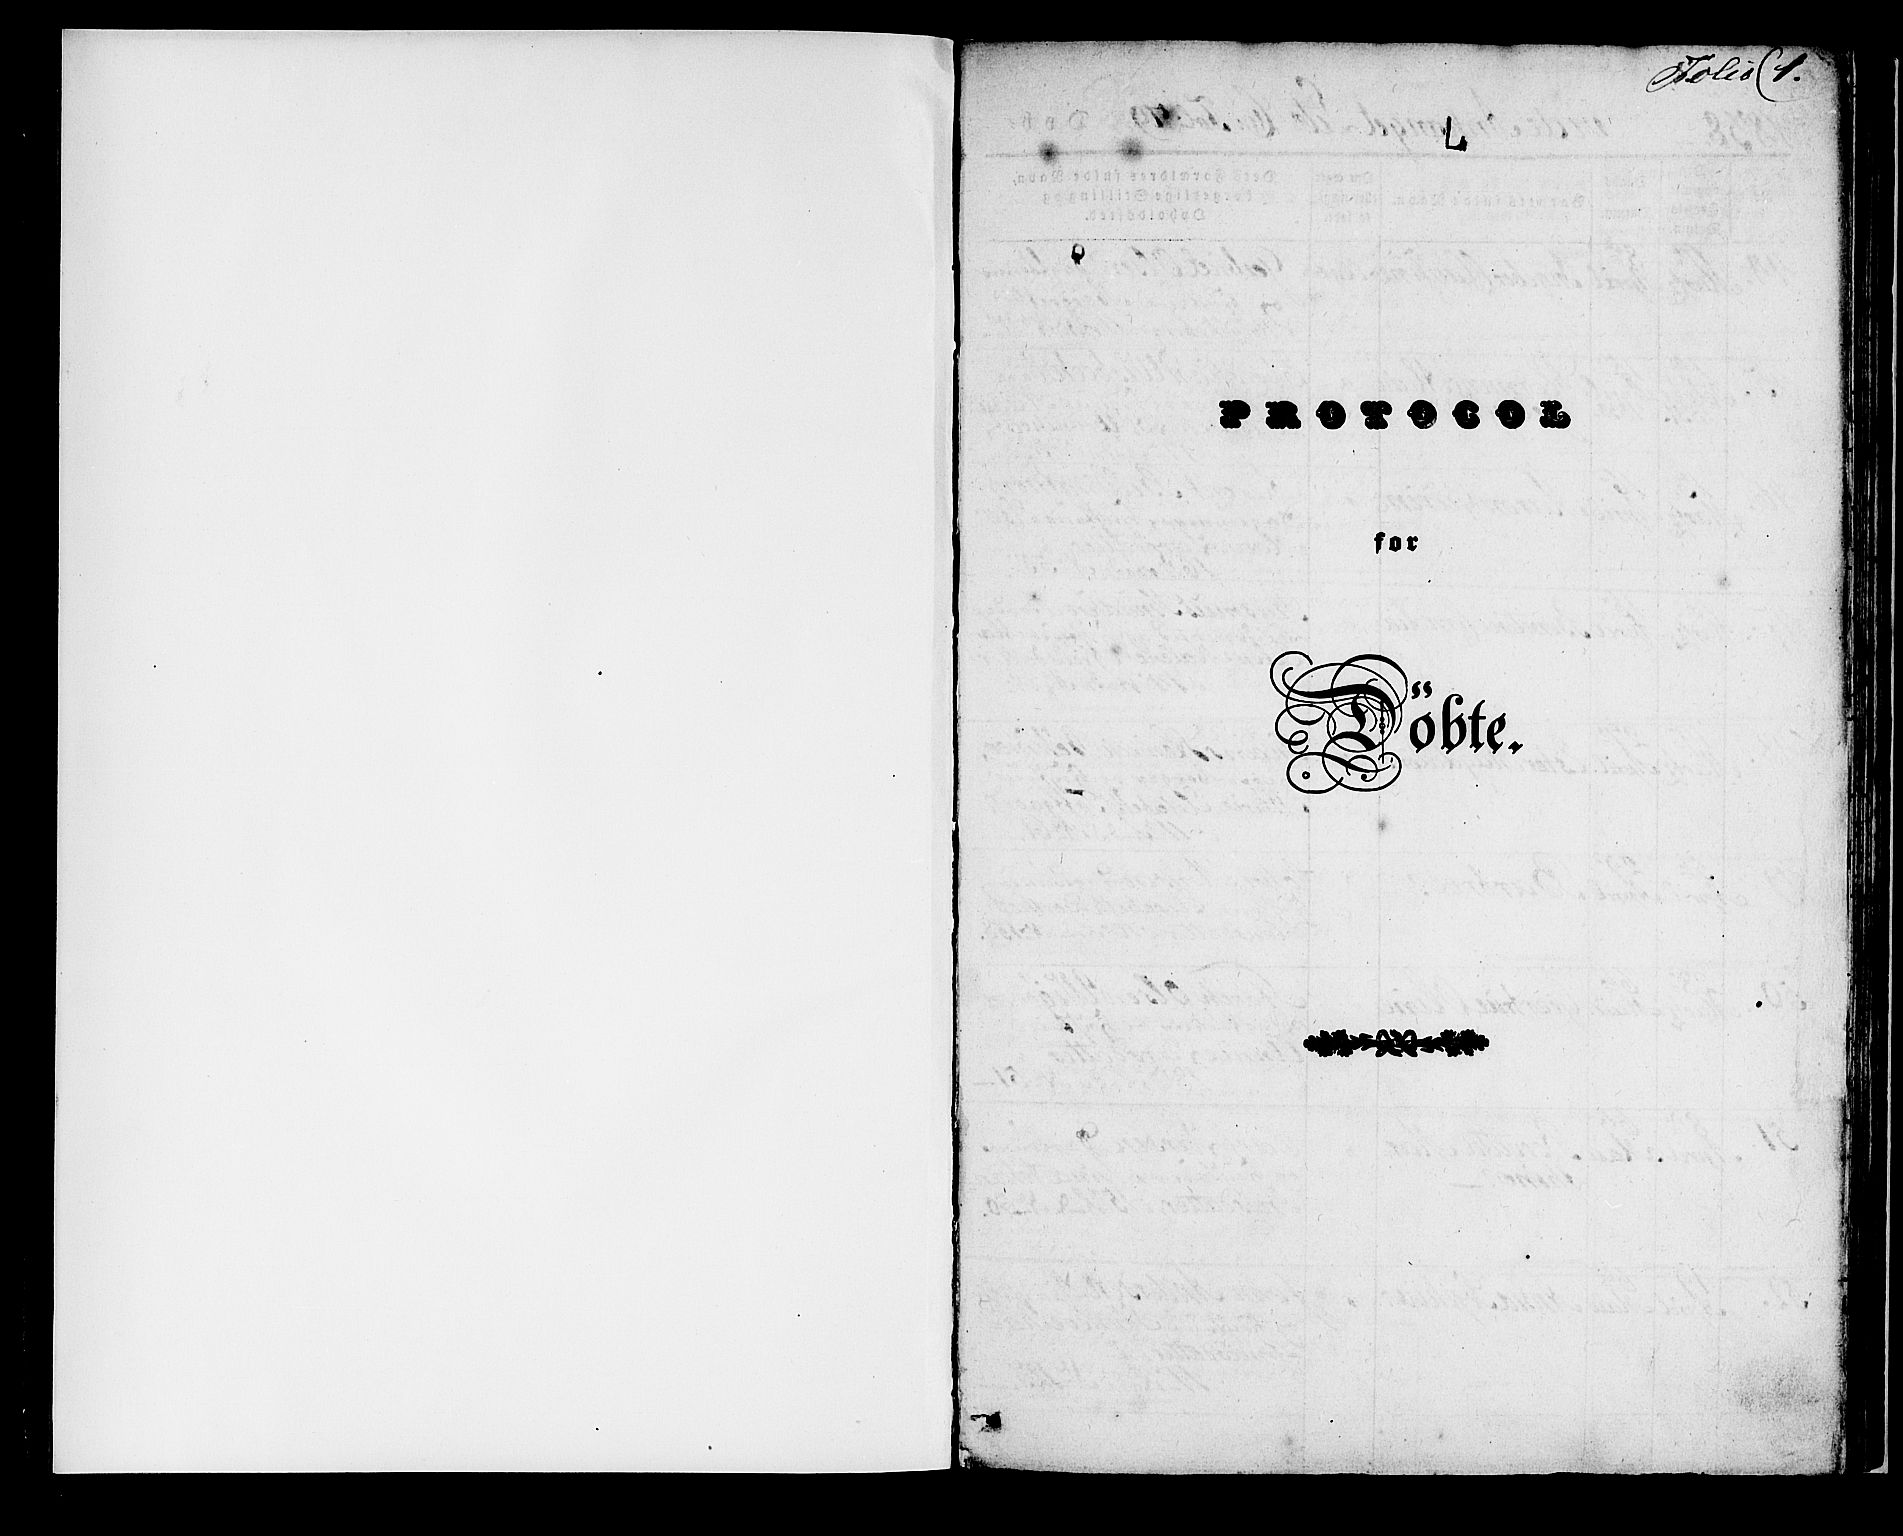 SAB, Domkirken Sokneprestembete, H/Haa/L0018: Parish register (official) no. B 1, 1838-1840, p. 1